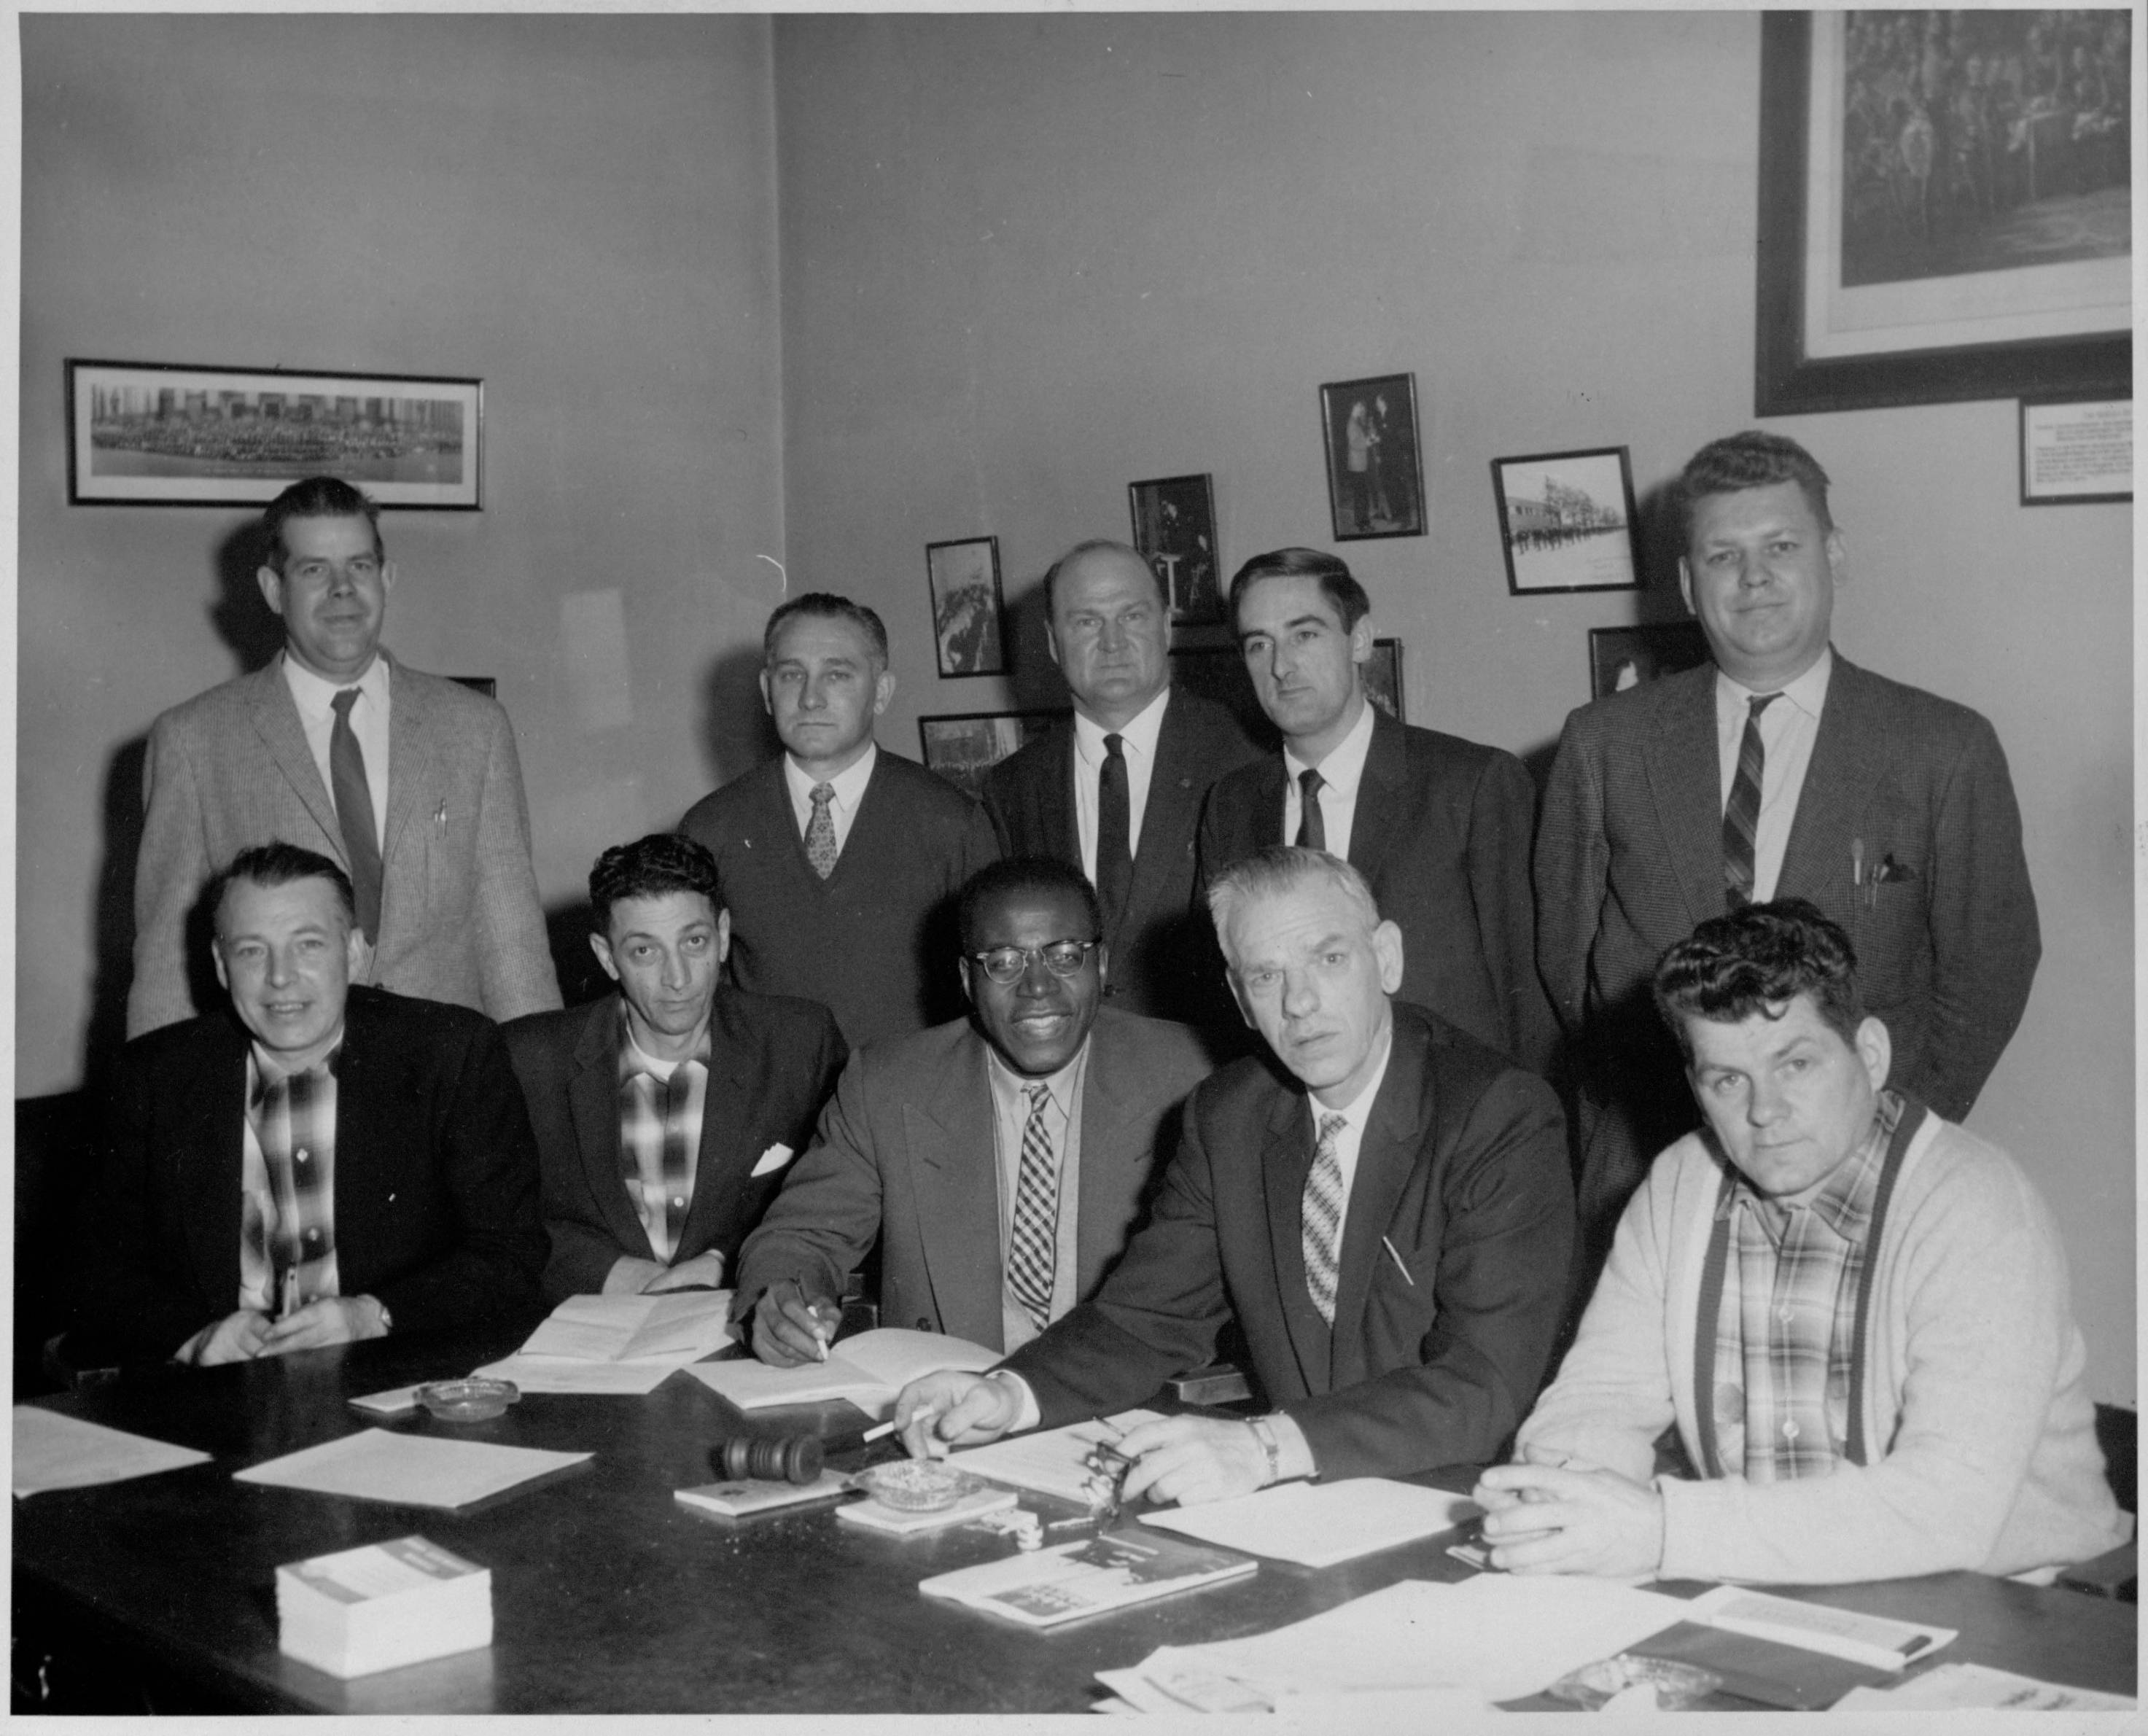 Henry Langdon et le comité exécutif de la section 1751 de l'Association internationale des machinistes en 1960. Le syndicat est devenu l'Association internationale des machinistes et des travailleurs de l'aérospatiale en 1965. Dans la photo, on voit, debout, de gauche à droite, Tim Horst, L. Brosseur, B.T. Horan, président général de la section, Mike Pitchford, président du comité syndical, et E. Davidson, secrétaire financier. À l'avant, figurent, assis, de gauche à droite, J. Comeau, fidéicommissaire, R. Galazzo, fidéicommissaire, Henry Langdon, secrétaire de séance, Victor Rugenius, président, et E.D. Bowles, trésorier. PHOTO : L1985-13_018_019_029, collection de photographies de l'Association internationale des machinistes et des travailleurs de l'aérospatiale, Southern Labor Archives. Special Collections and Archives, Georgia State University